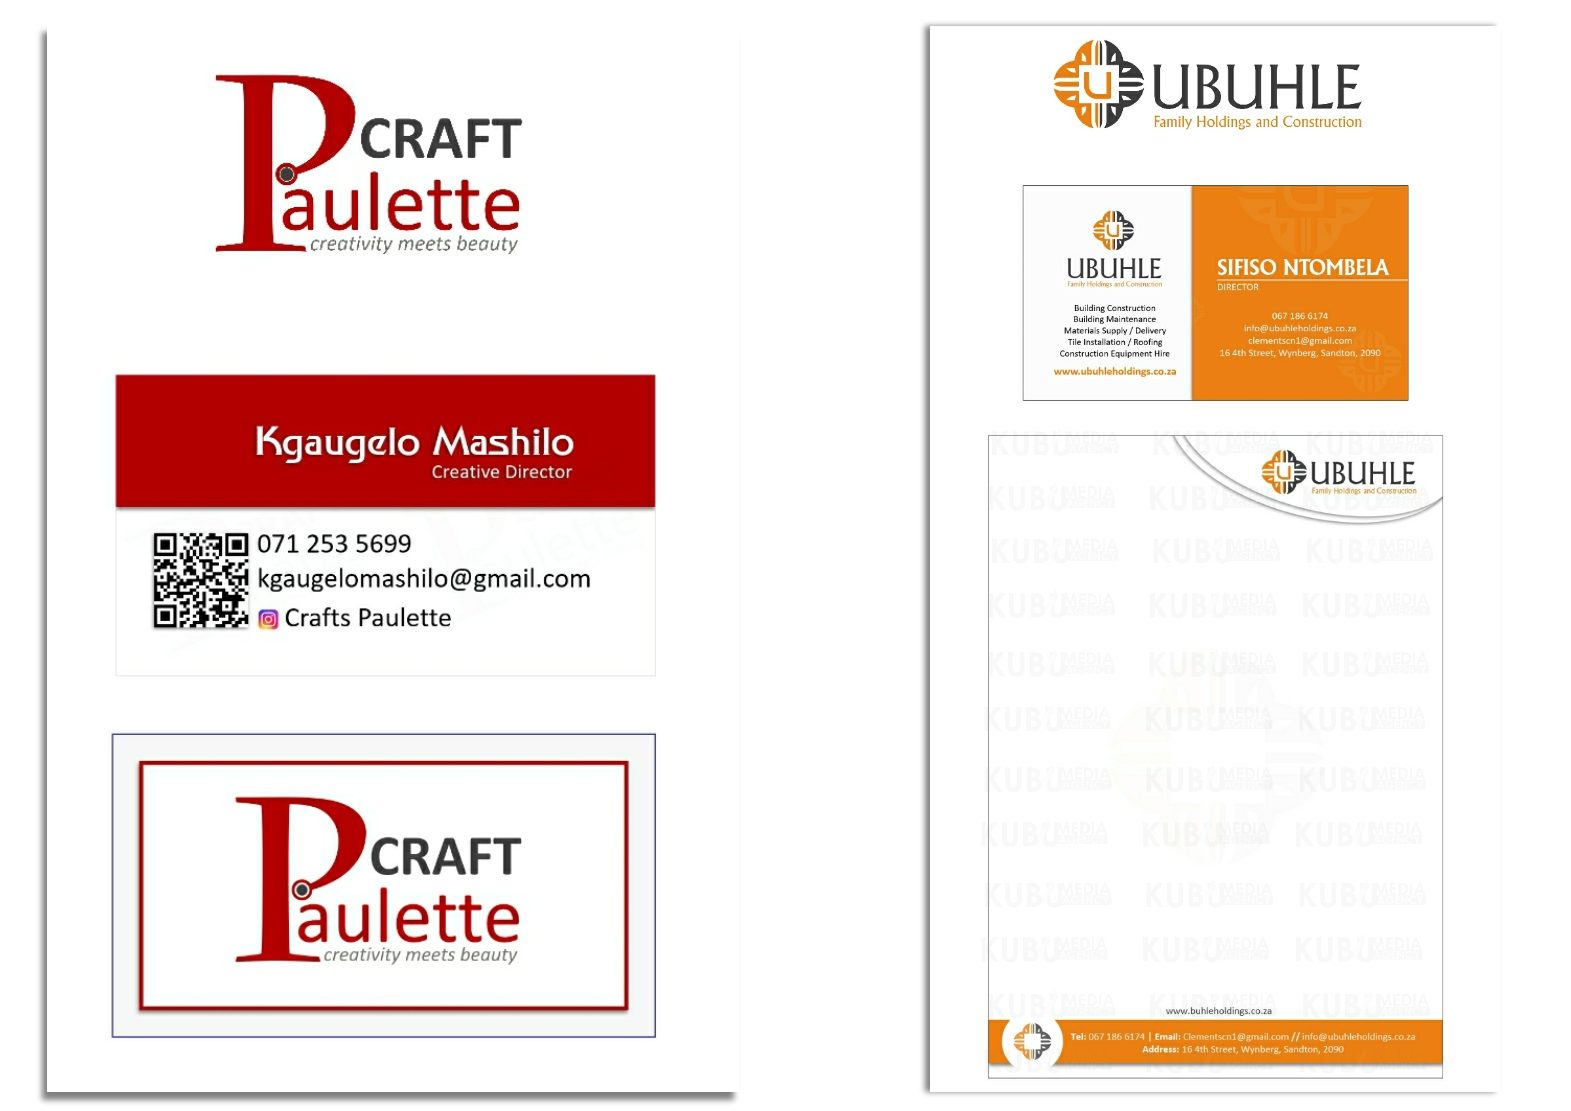 Company Branding Logo - Business Card - Letterhead - Design set by Kubumedia Graphic and Web Design Pretoria - Centurion - Sandton - South Africa